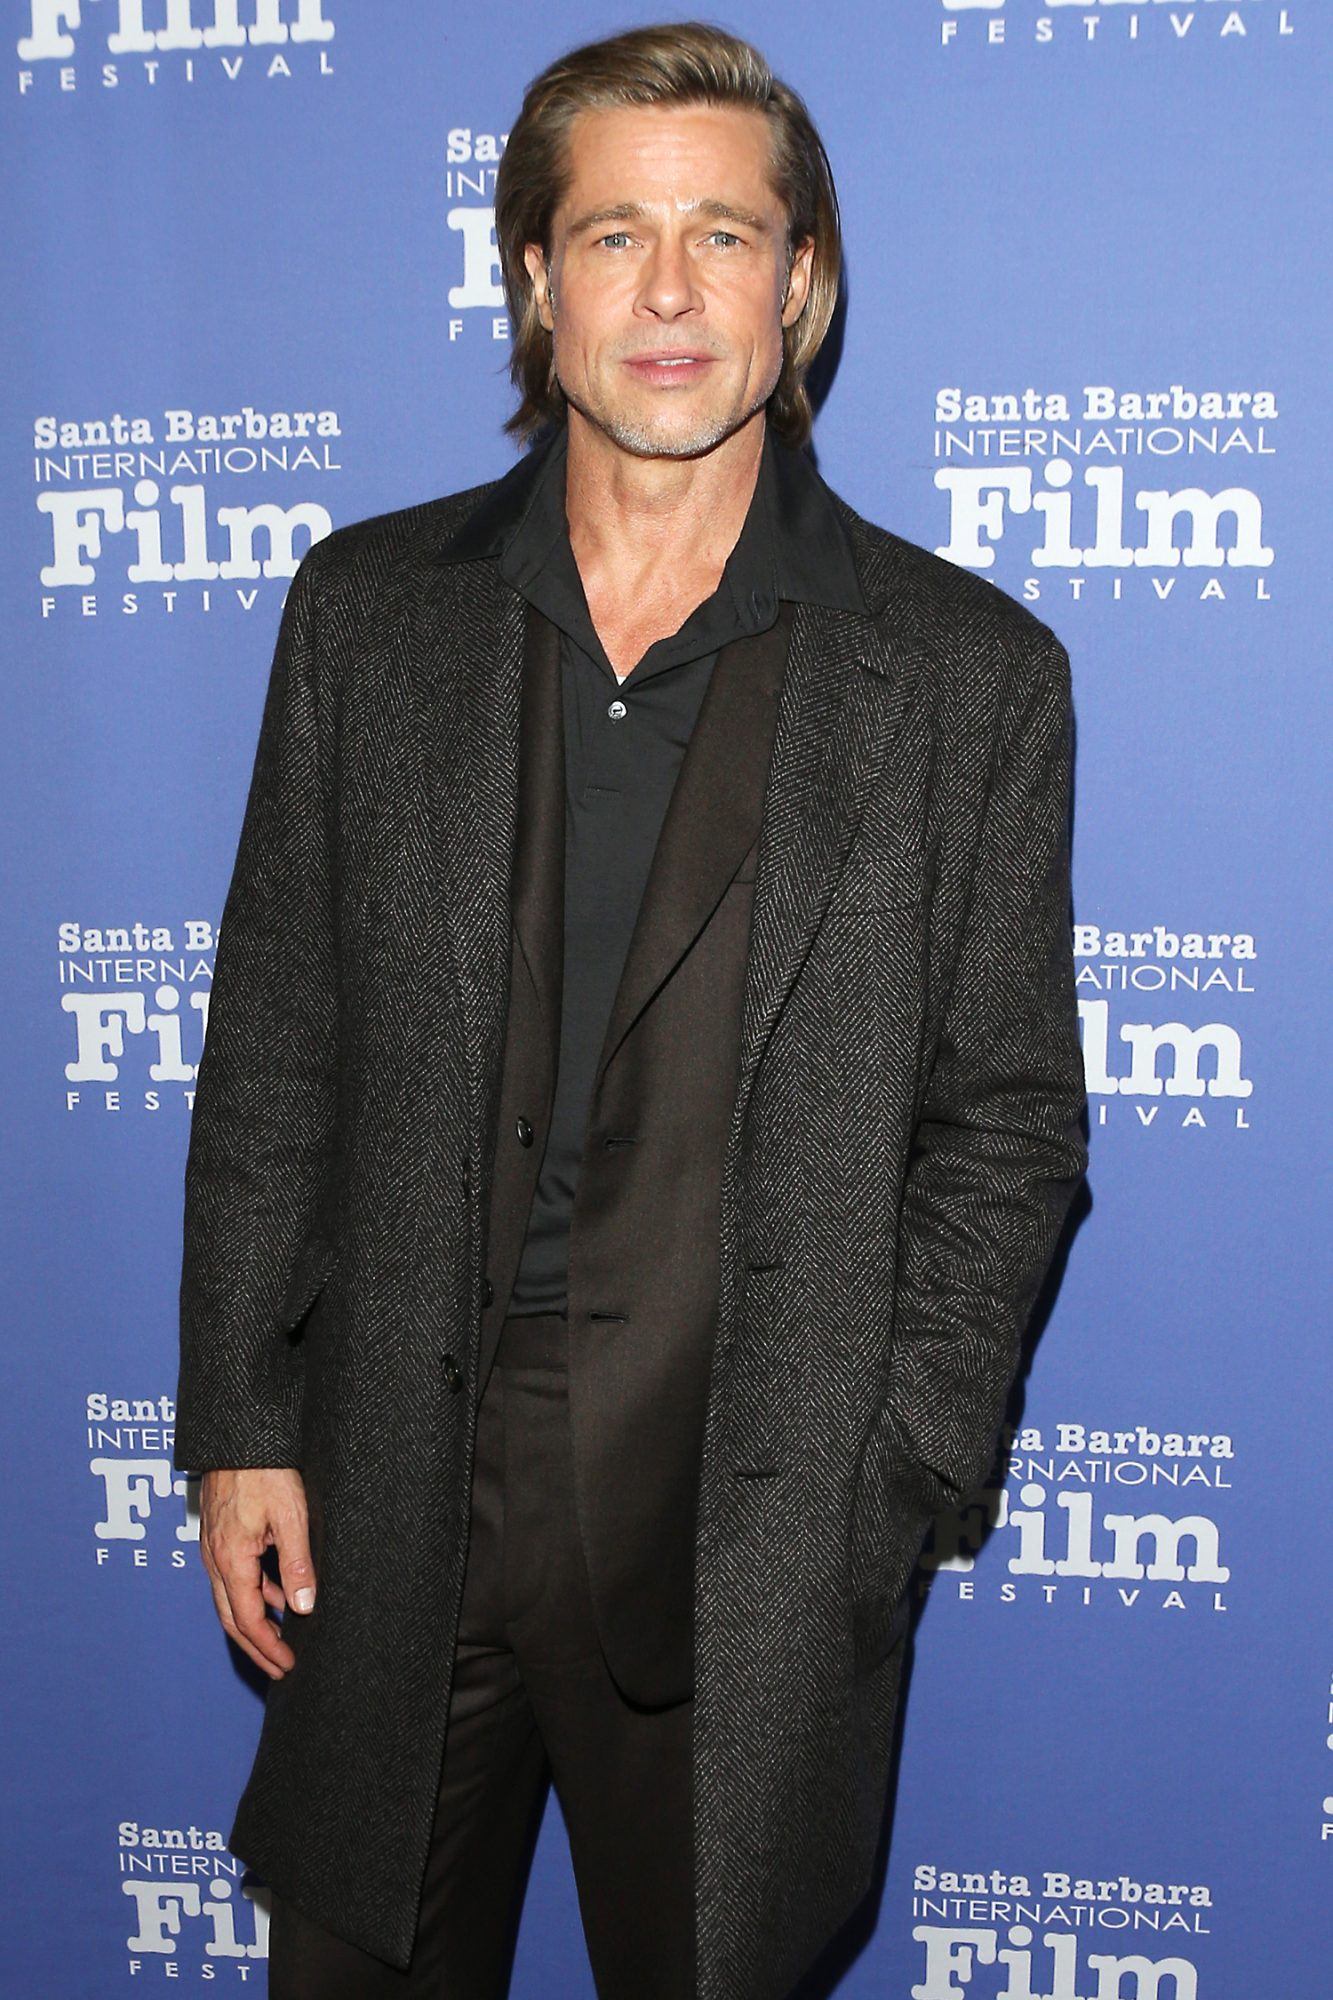 Brad Pitt attends the 35th Annual Santa Barbara International Film Festival